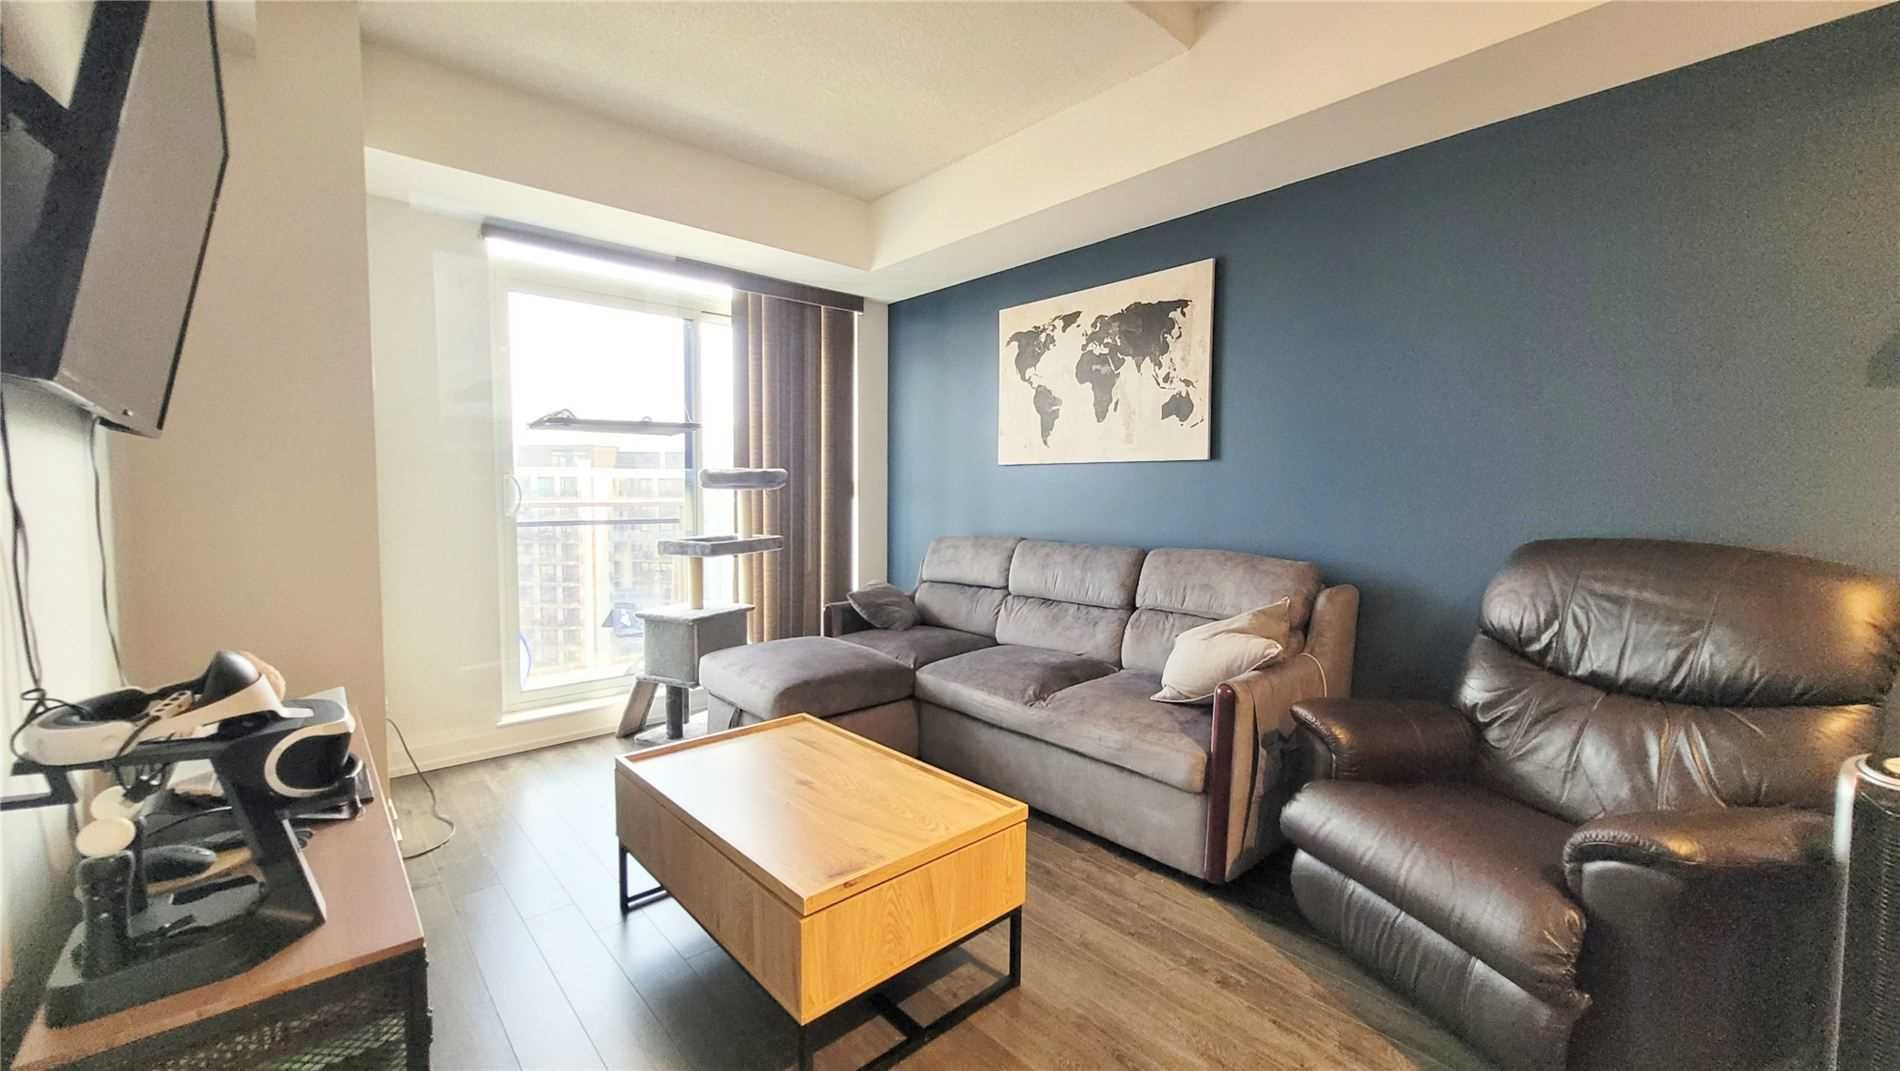 1070 Sheppard Ave W, unit 1516 for sale in York University Heights - image #2